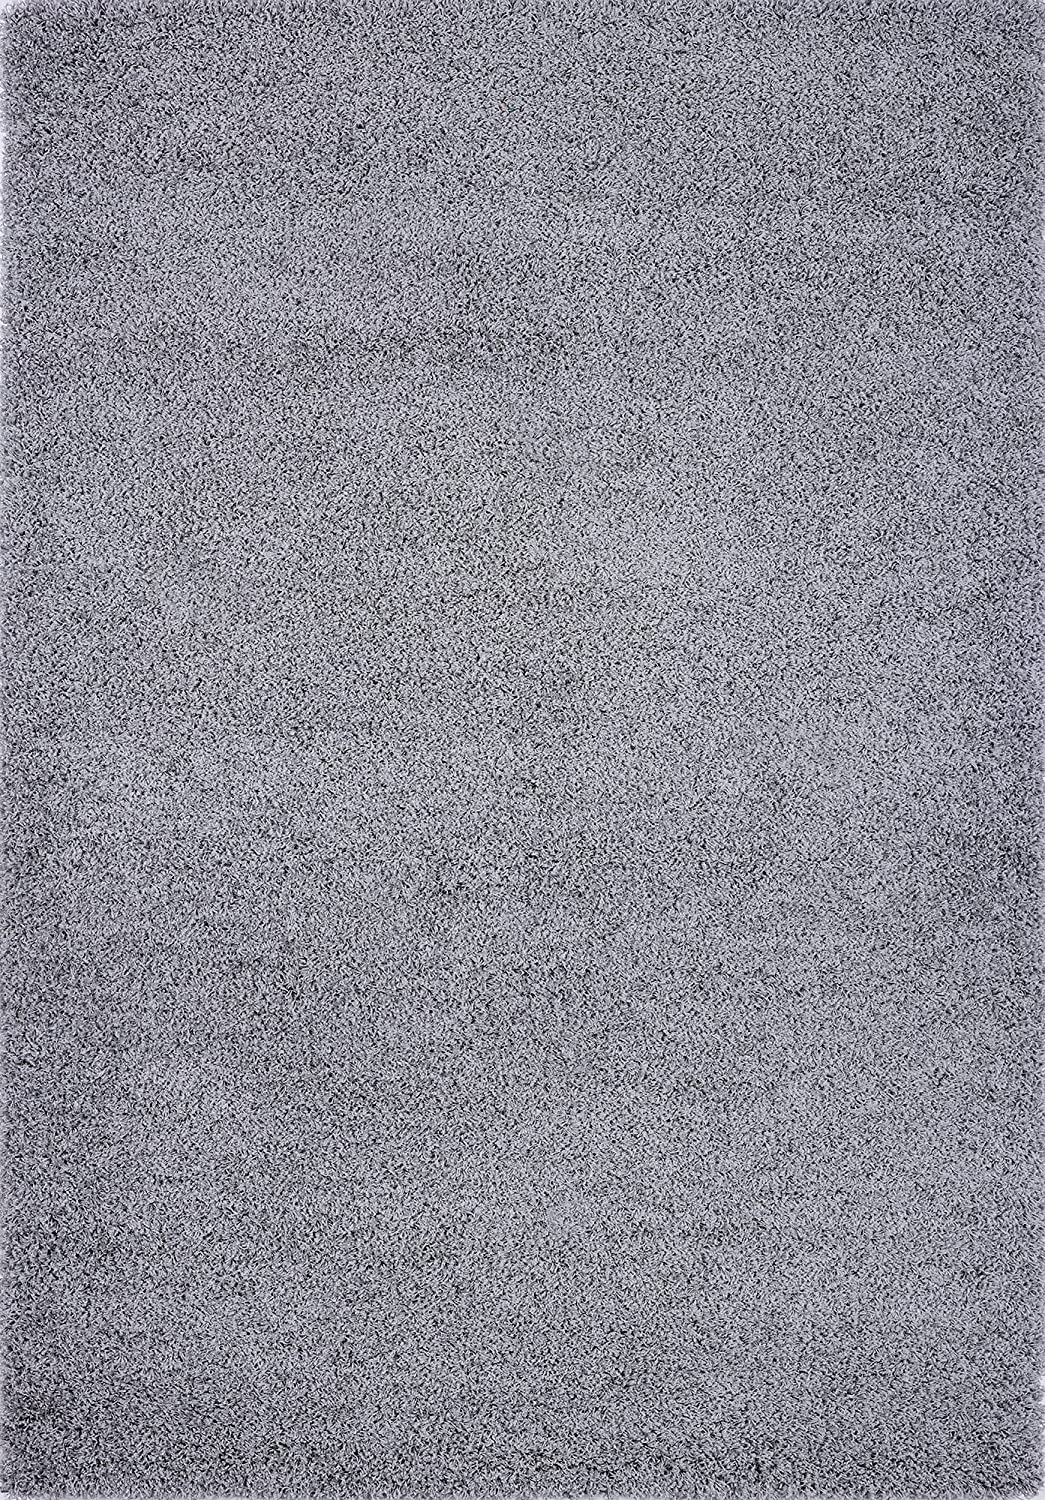 Pierre Cardin Luxury Shag/Flokati Collection Trellis Rug Design Abstract Area Rugs for Living Room Carpets (5' x 8', Gray)